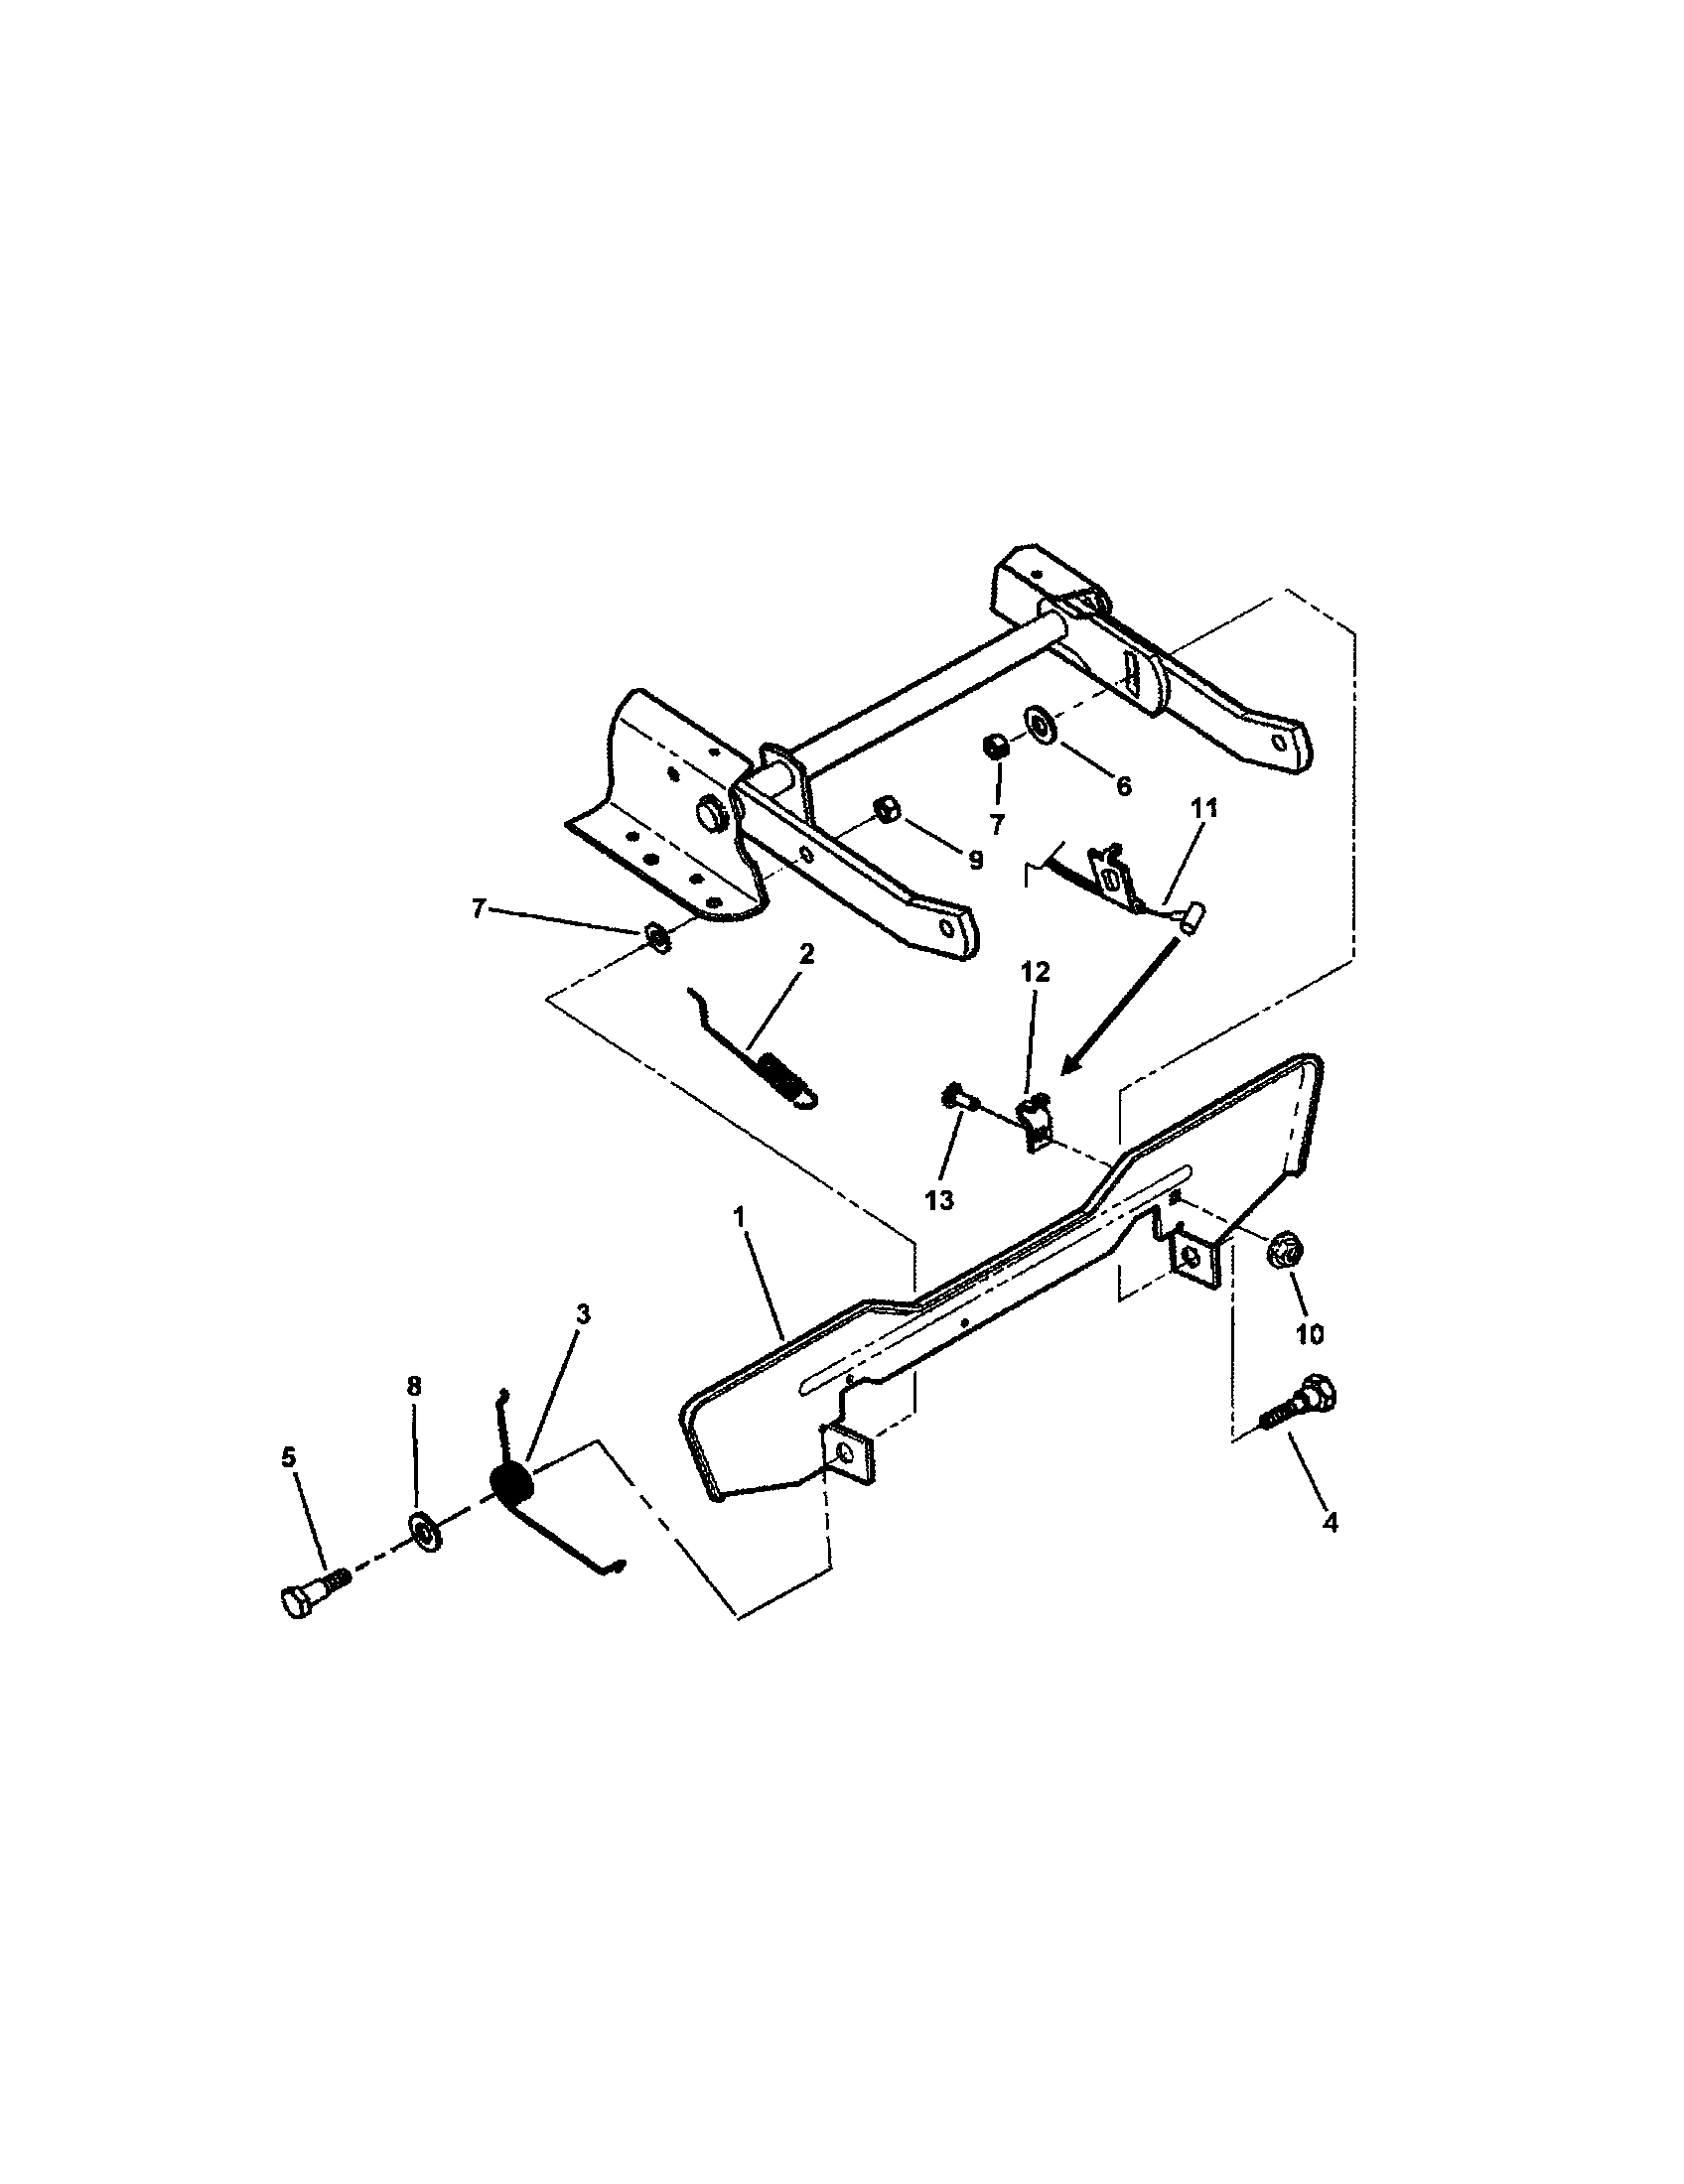 diagram parts list for model 301223bve snapperparts ridingmower